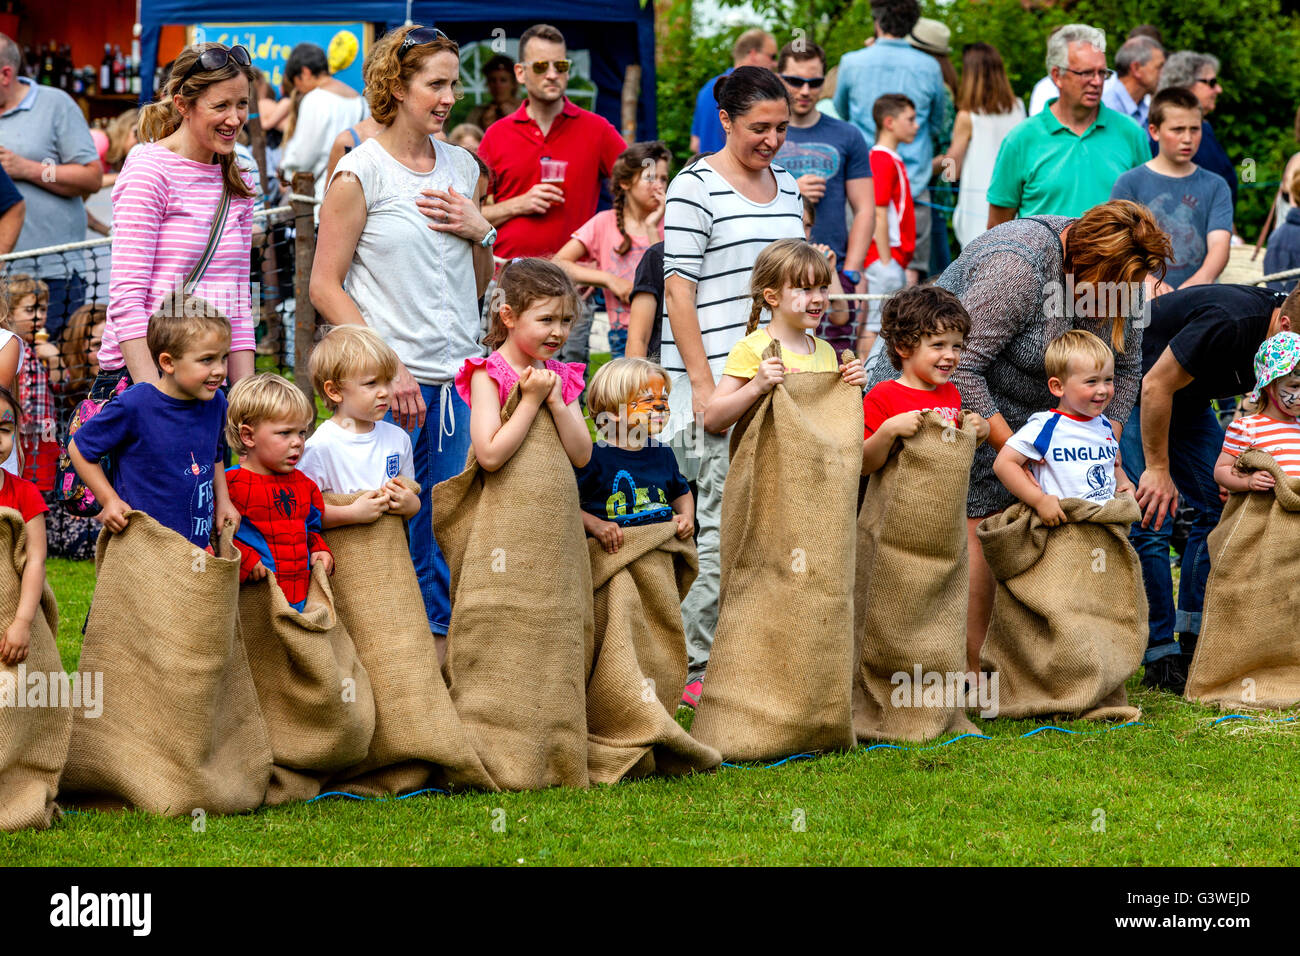 Children Prepare To Race In A Traditional Sack Race At The Medieval Fair Of Abinger, Surrey, UK - Stock Image